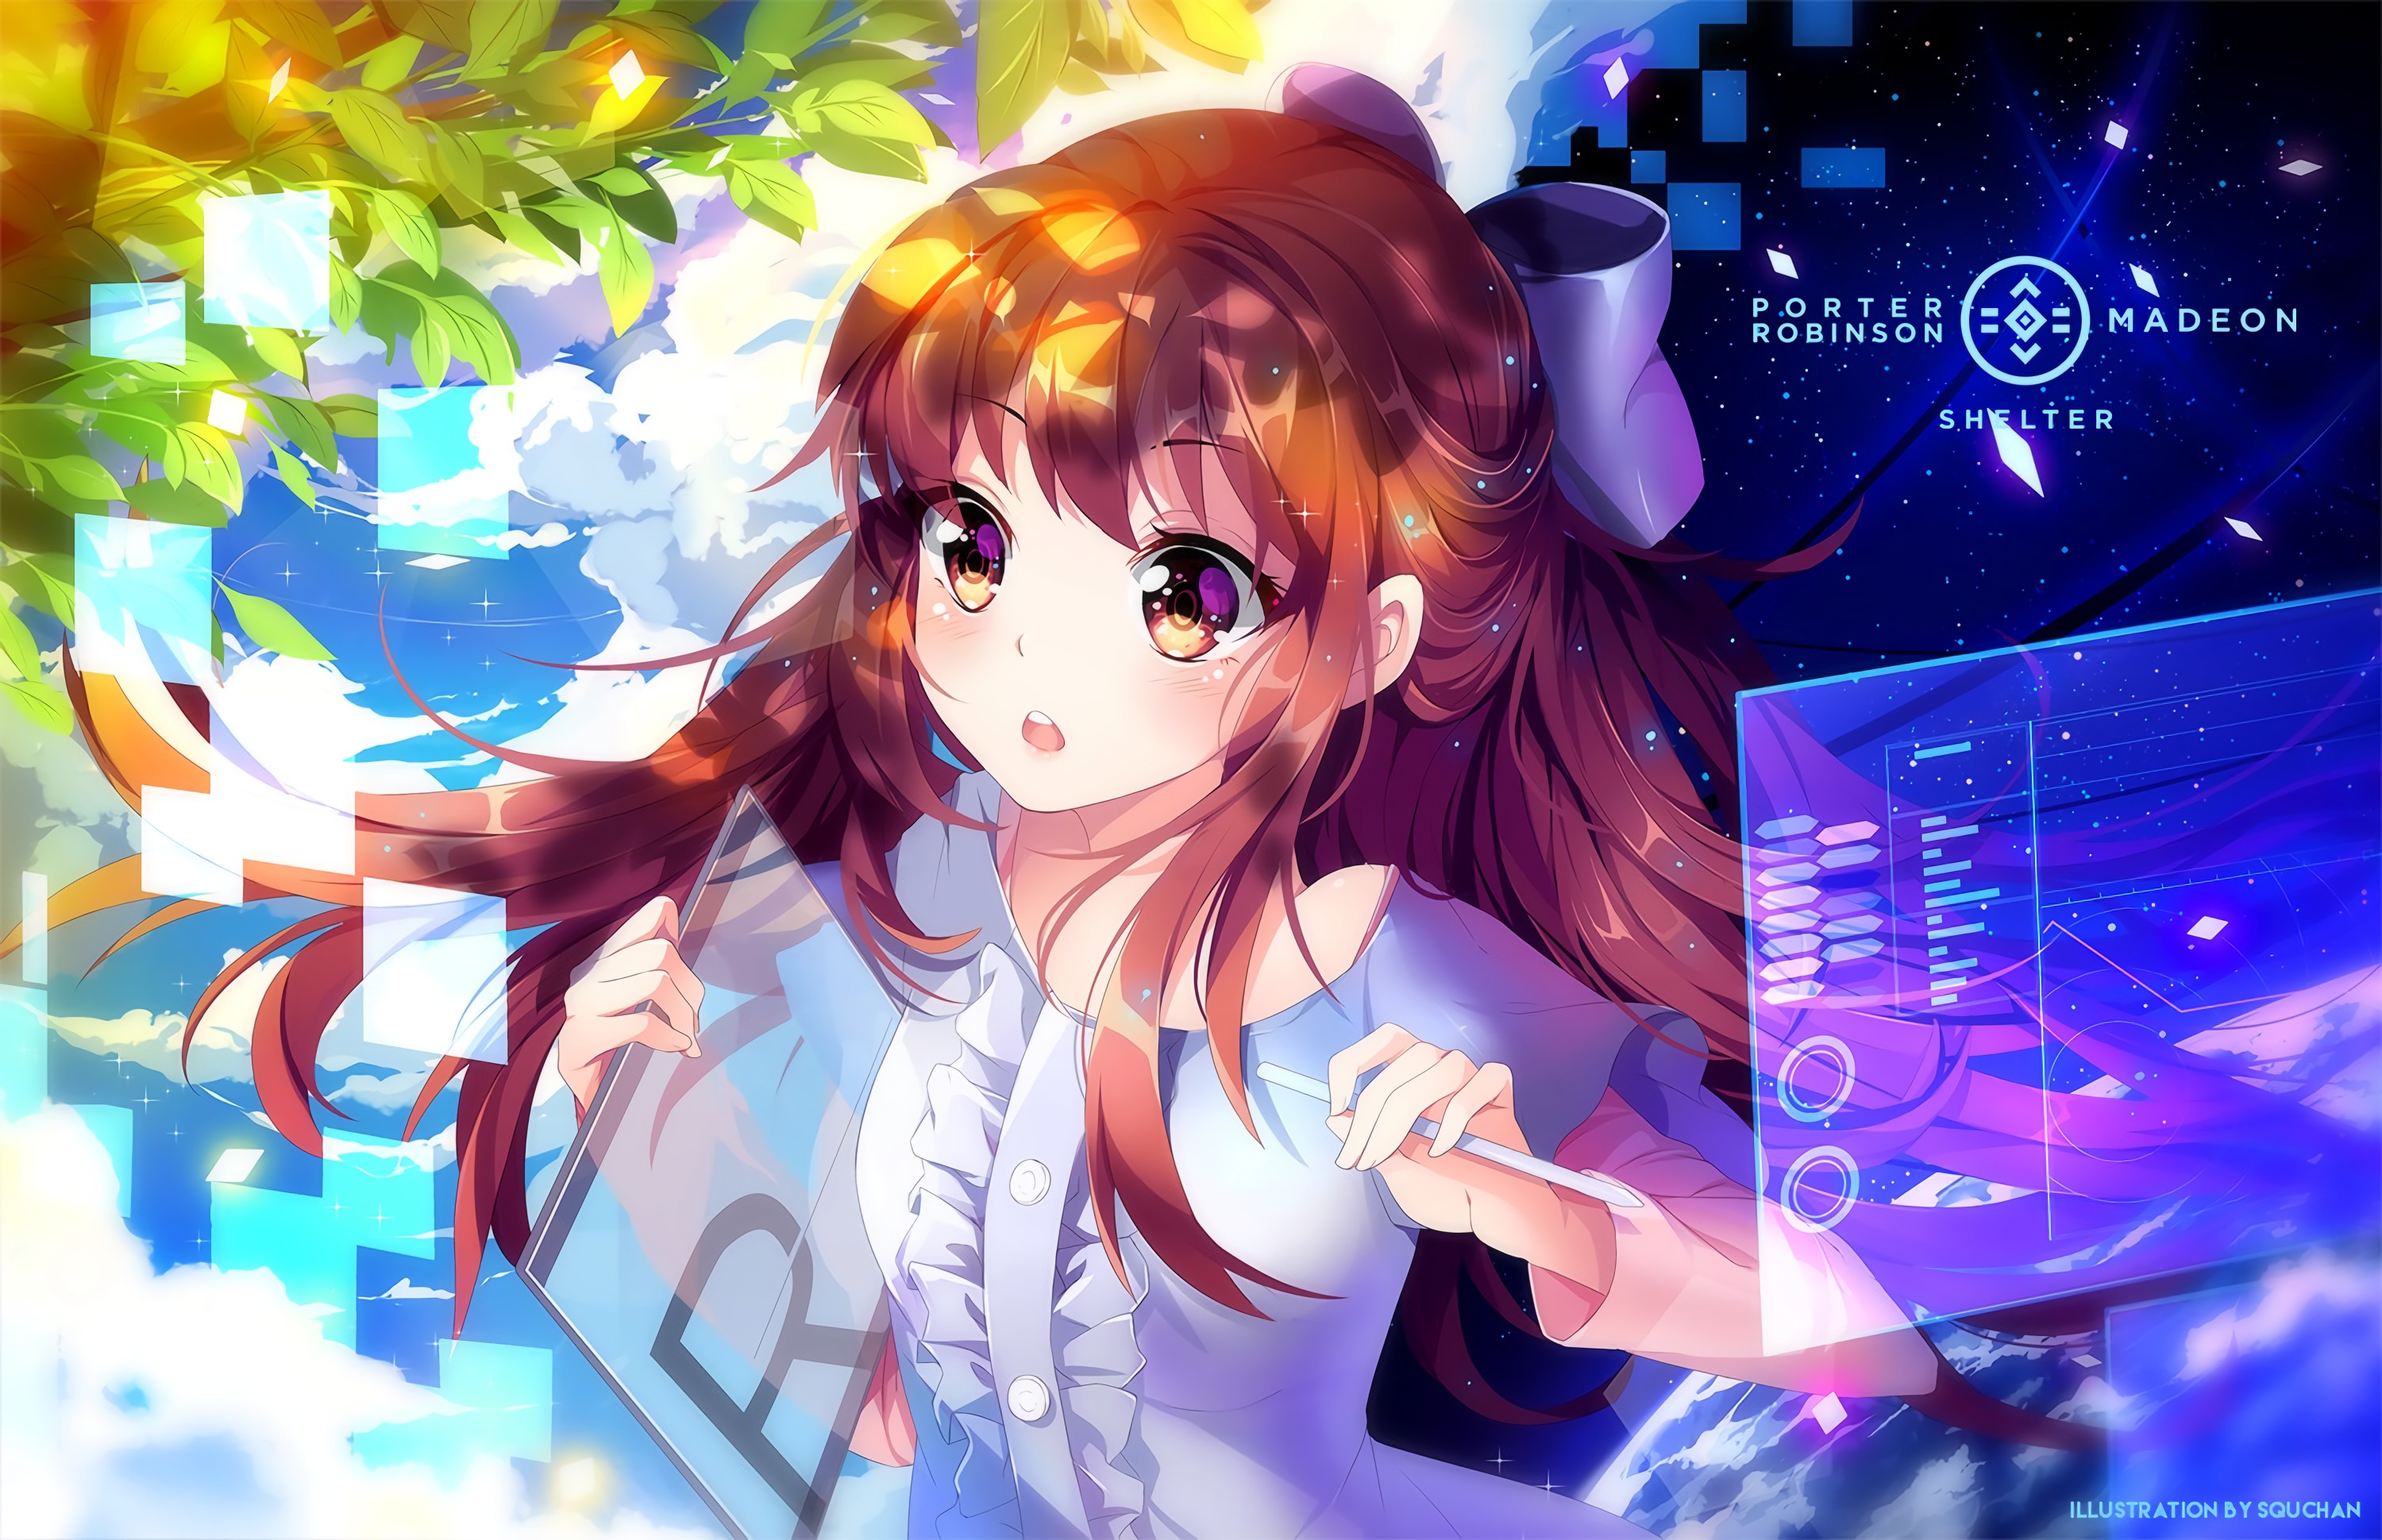 Porter Robinson Long Hair Brunette Anime Anime Girls Shelter Rin Shelter Hd Wallpapers Desktop And Mobile Images Photos